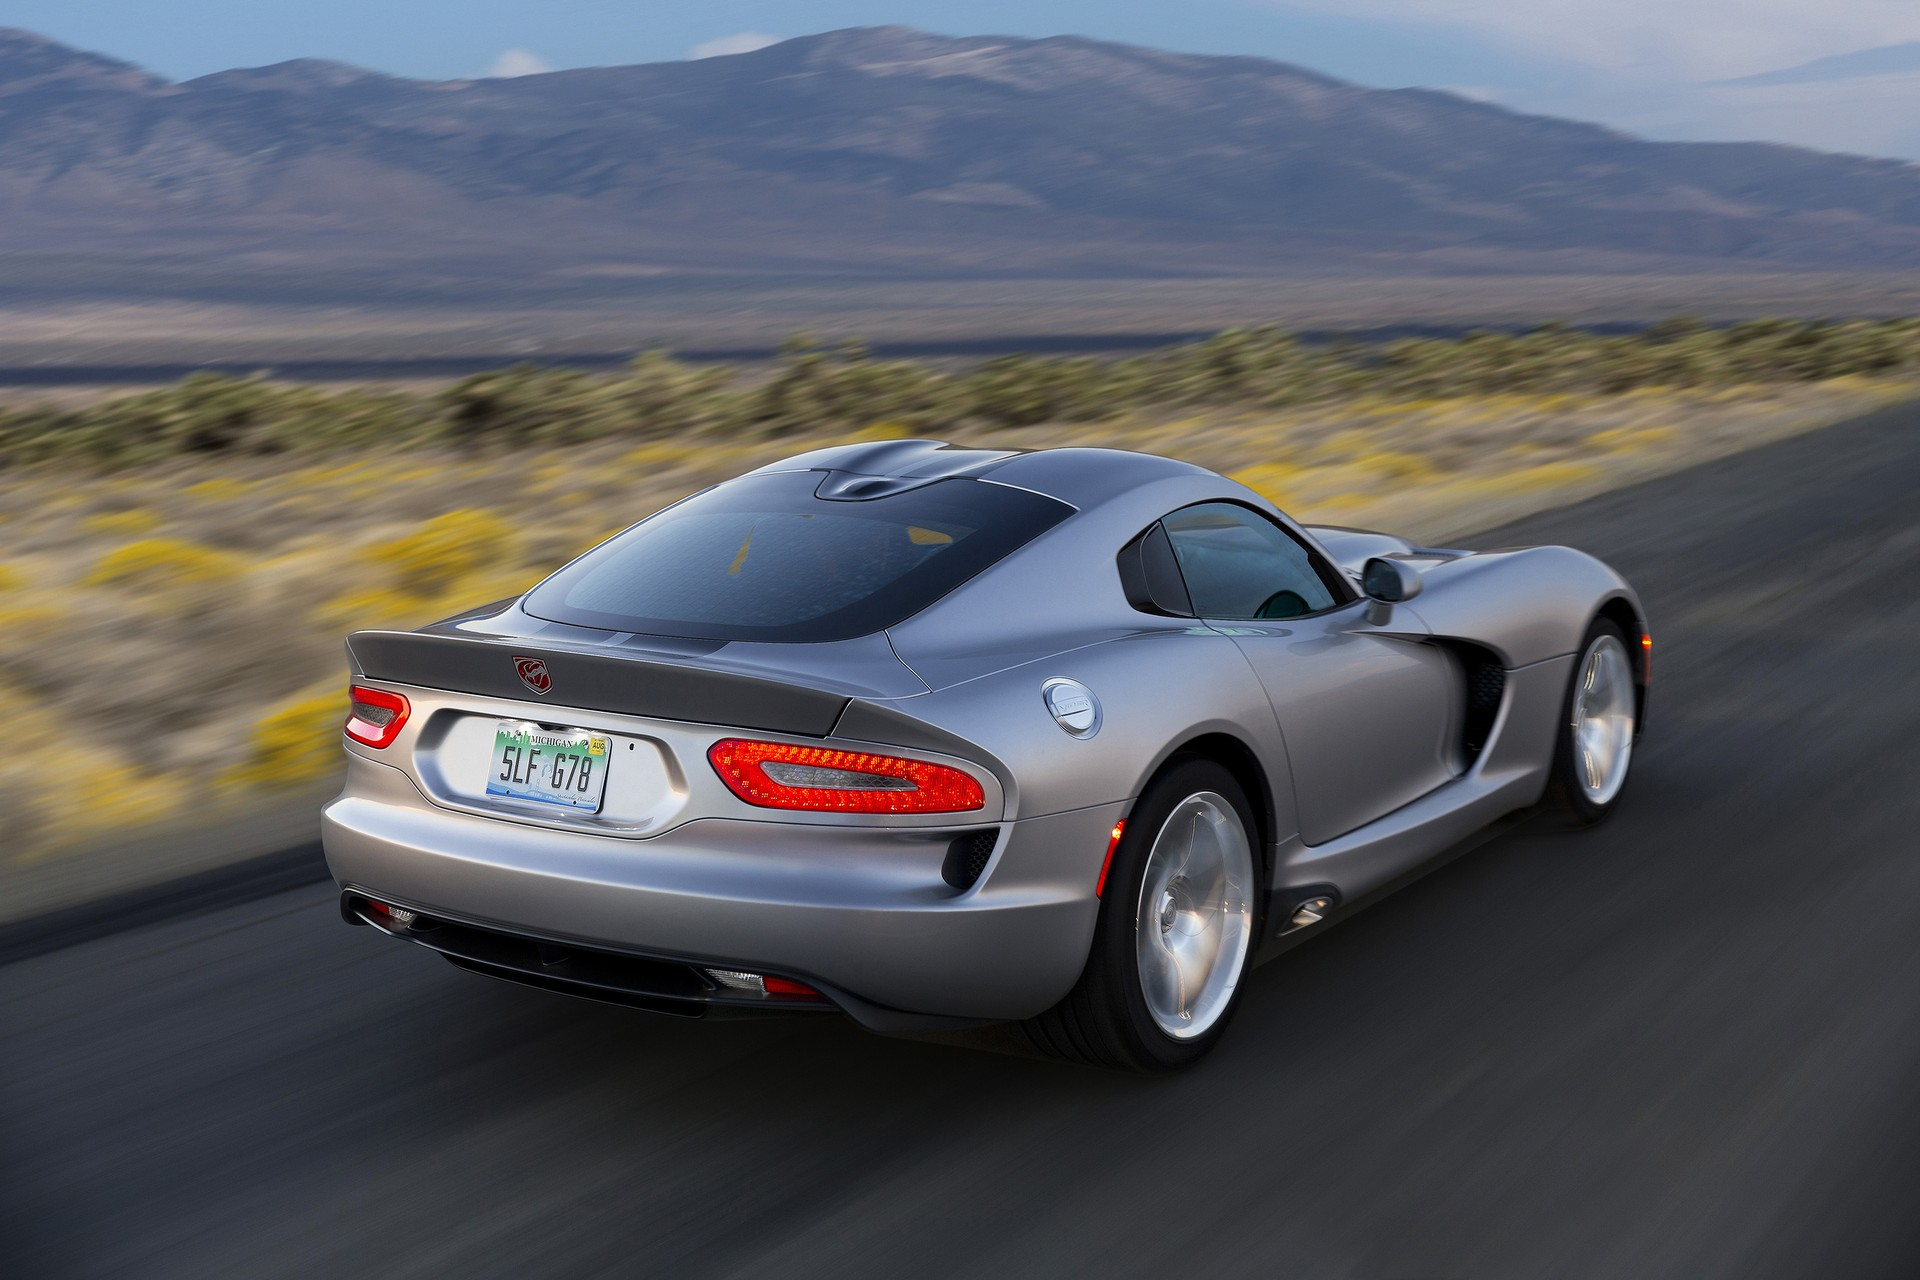 Dodge Viper's Next Update May See More Power And Convertible Option: Report